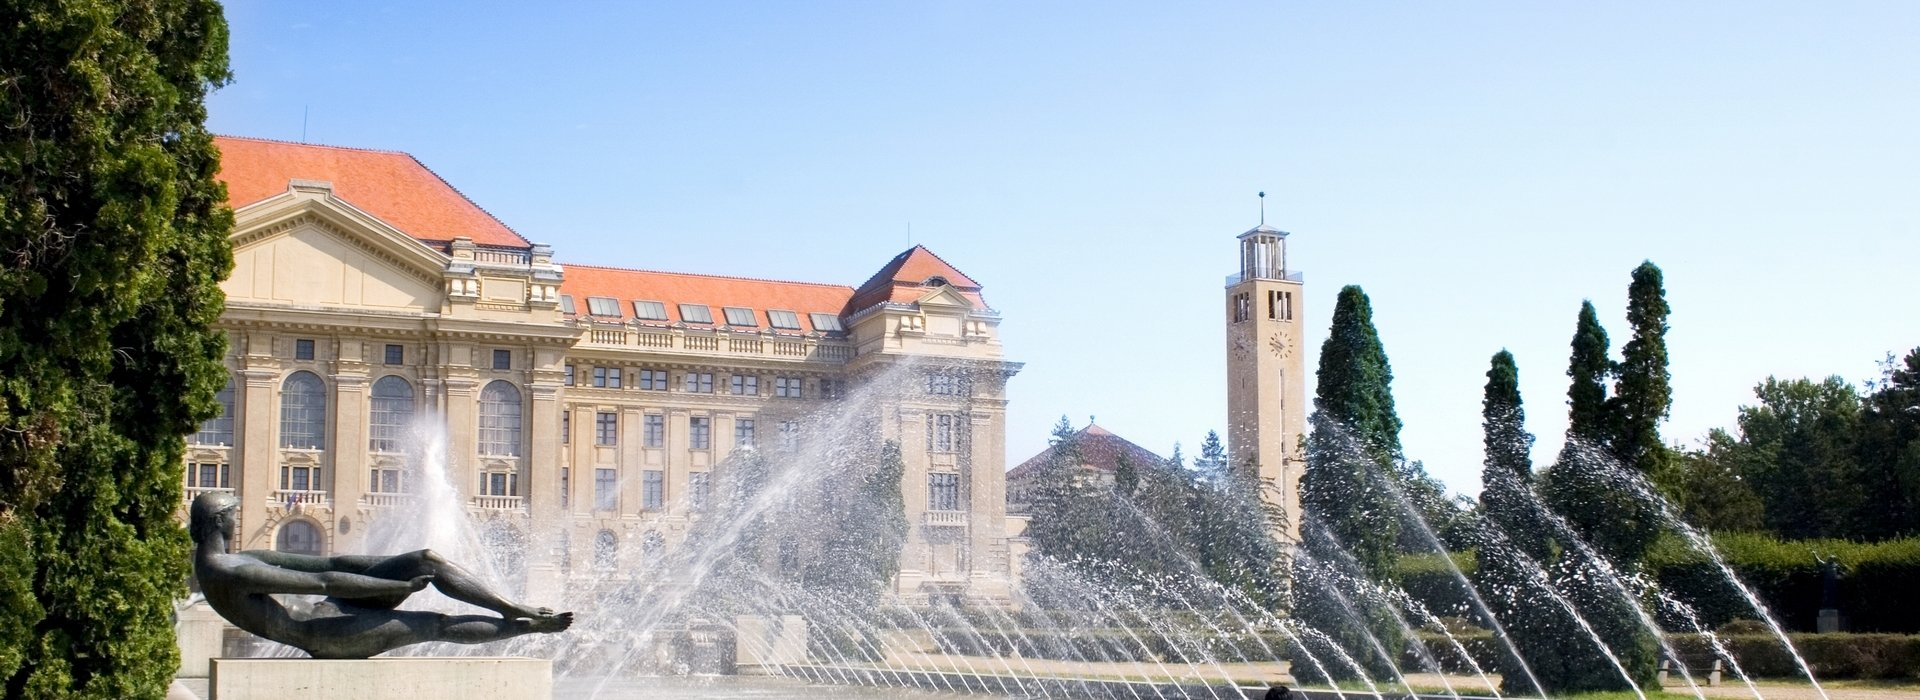 Debrecen Szabadid